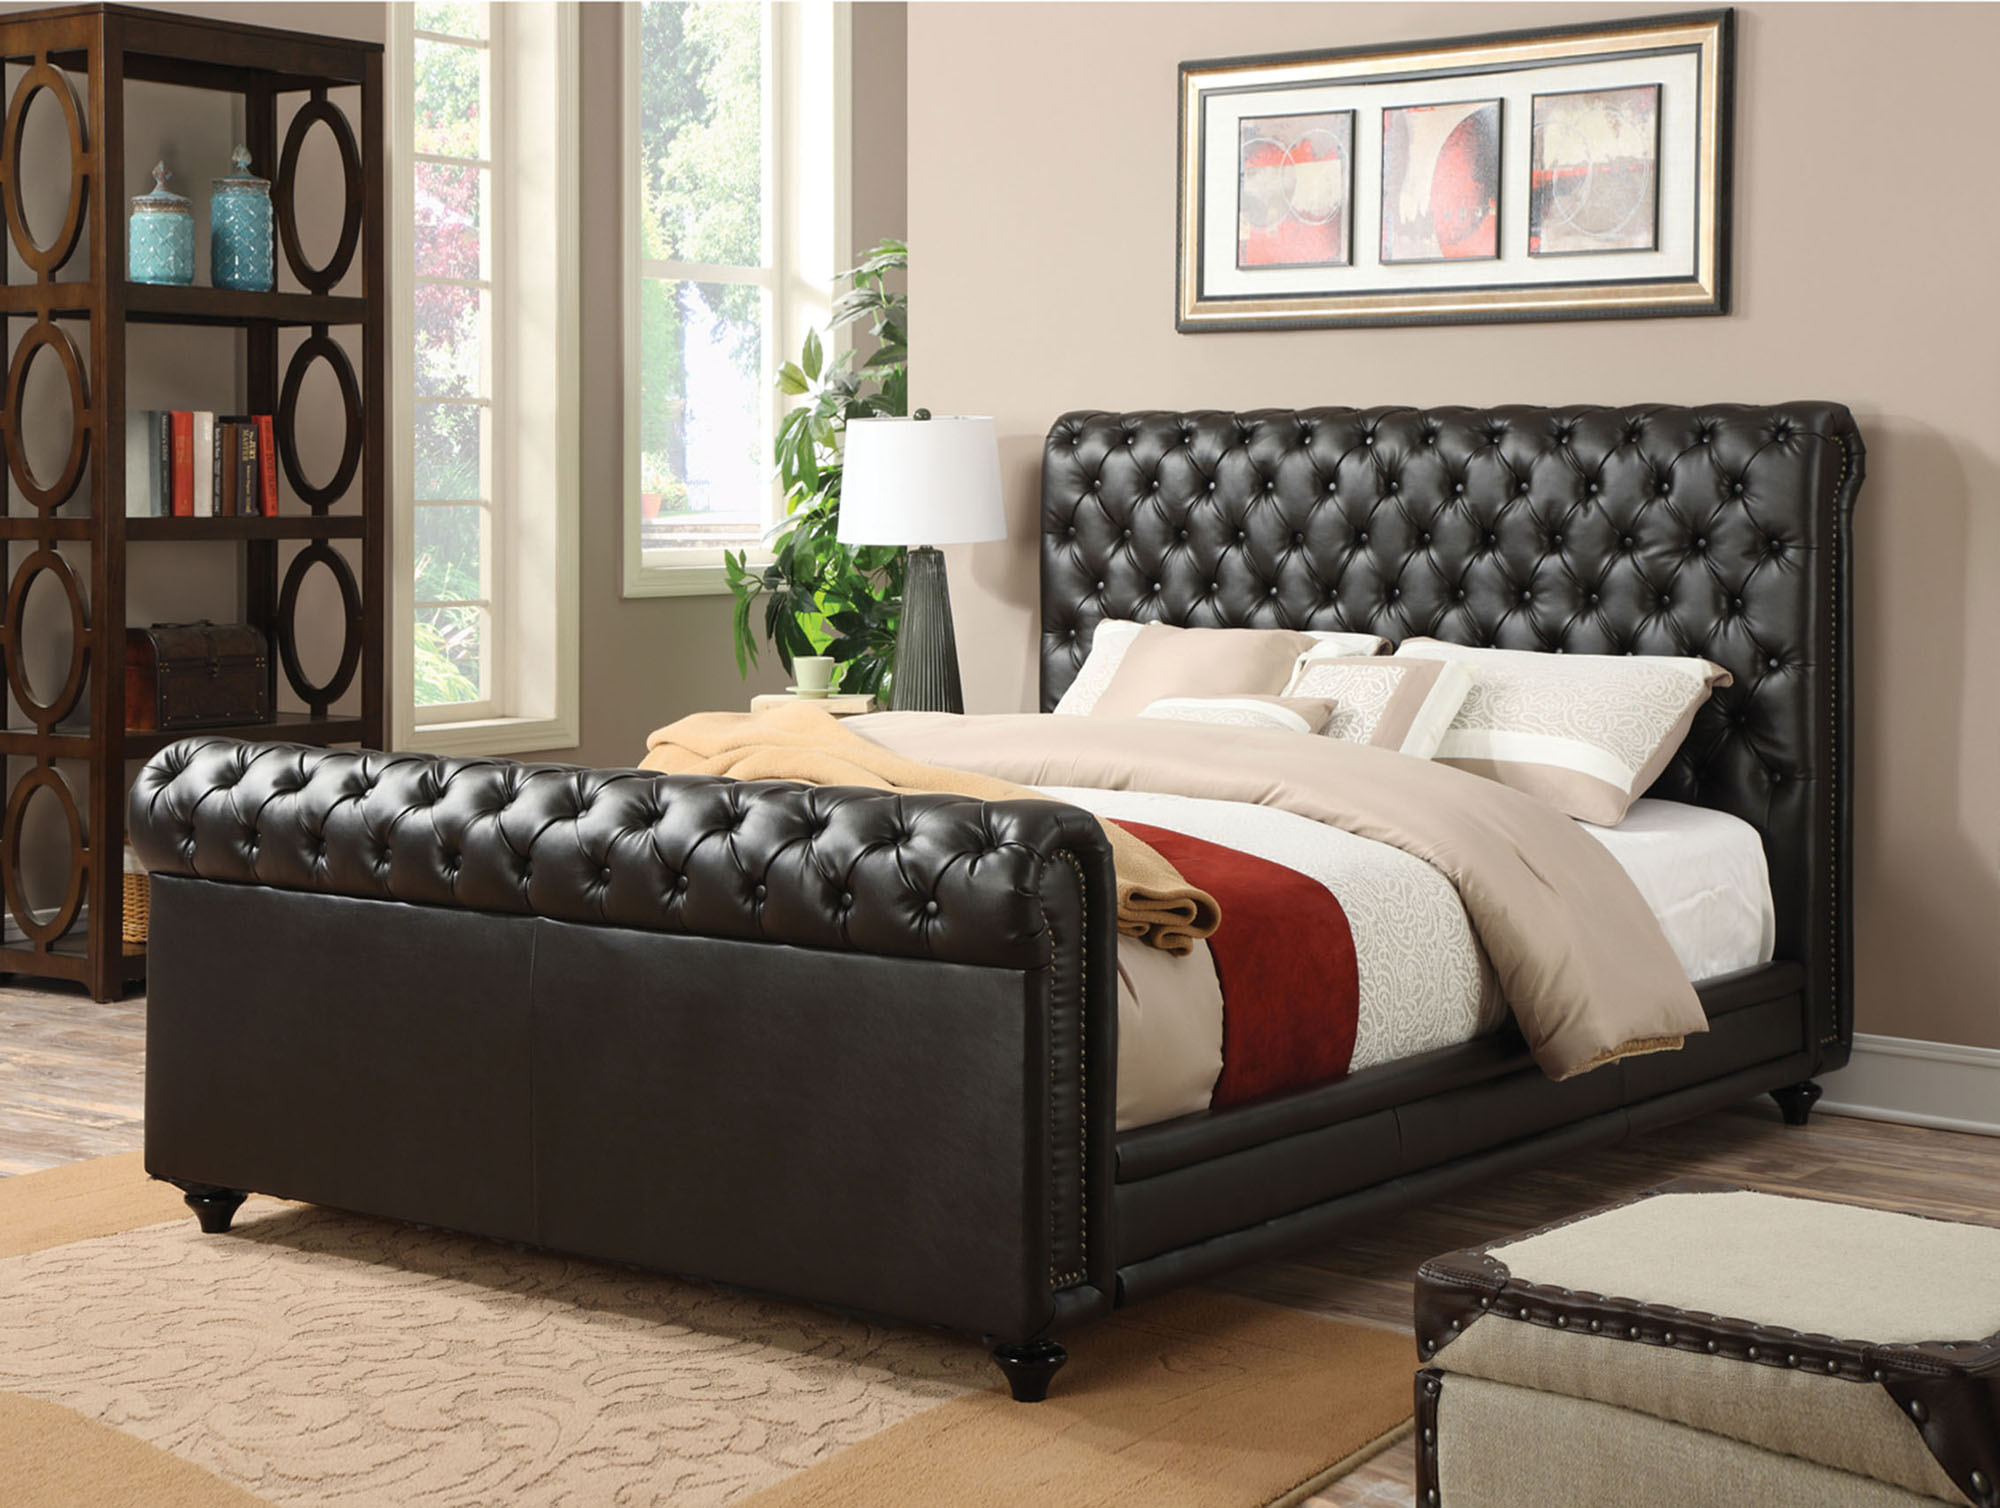 Norris Queen Leather Bed | Acme Furniture | Home Gallery Stores ...